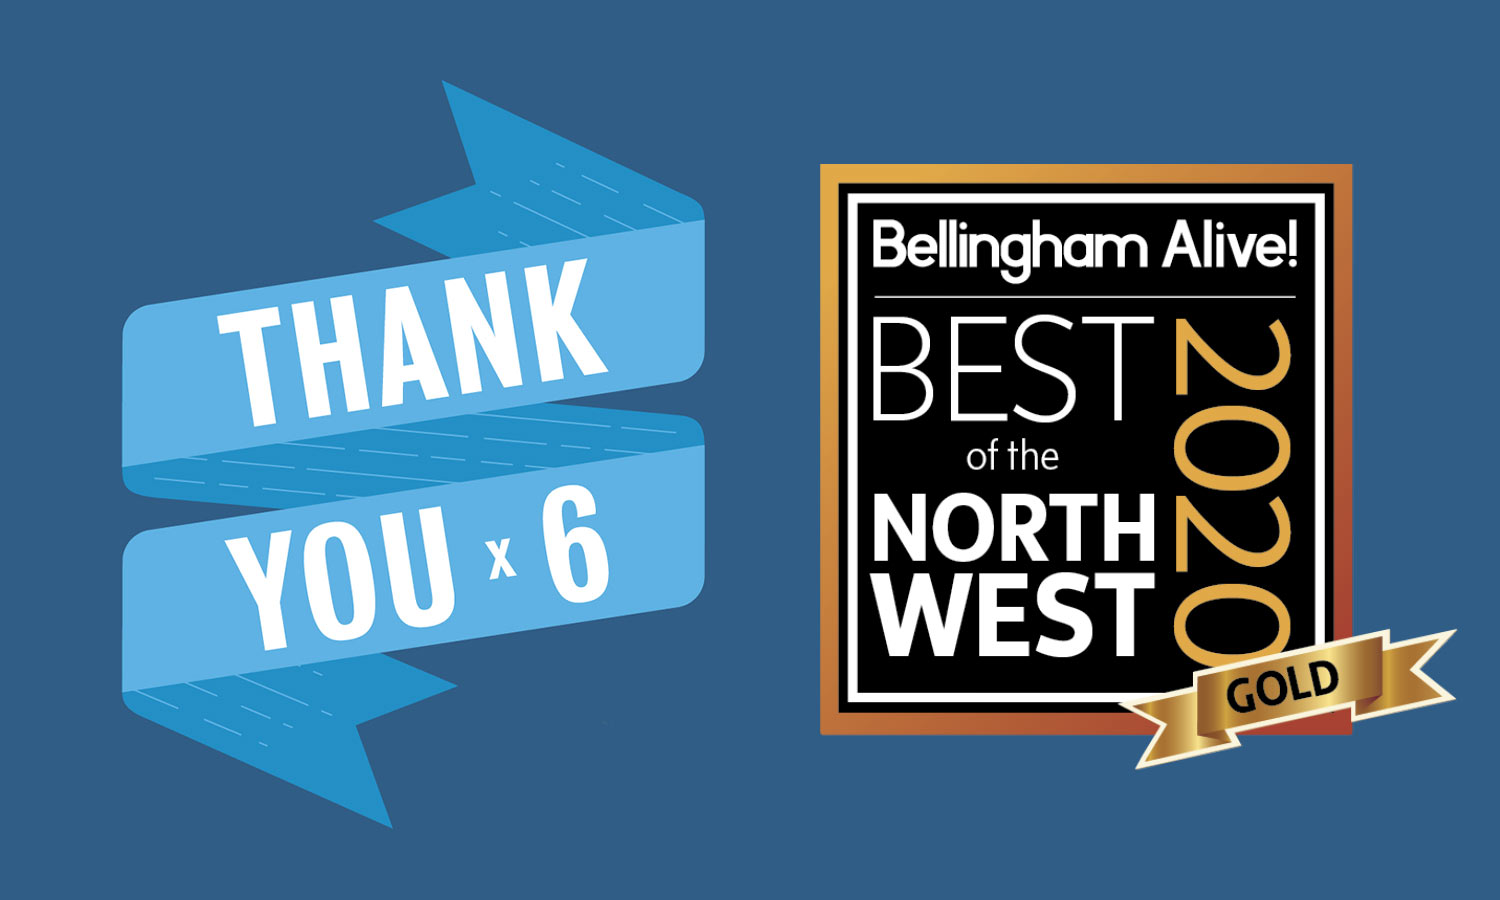 Thank you times six. Bellingham Alive! Best of the Northwest 2020 (Gold).